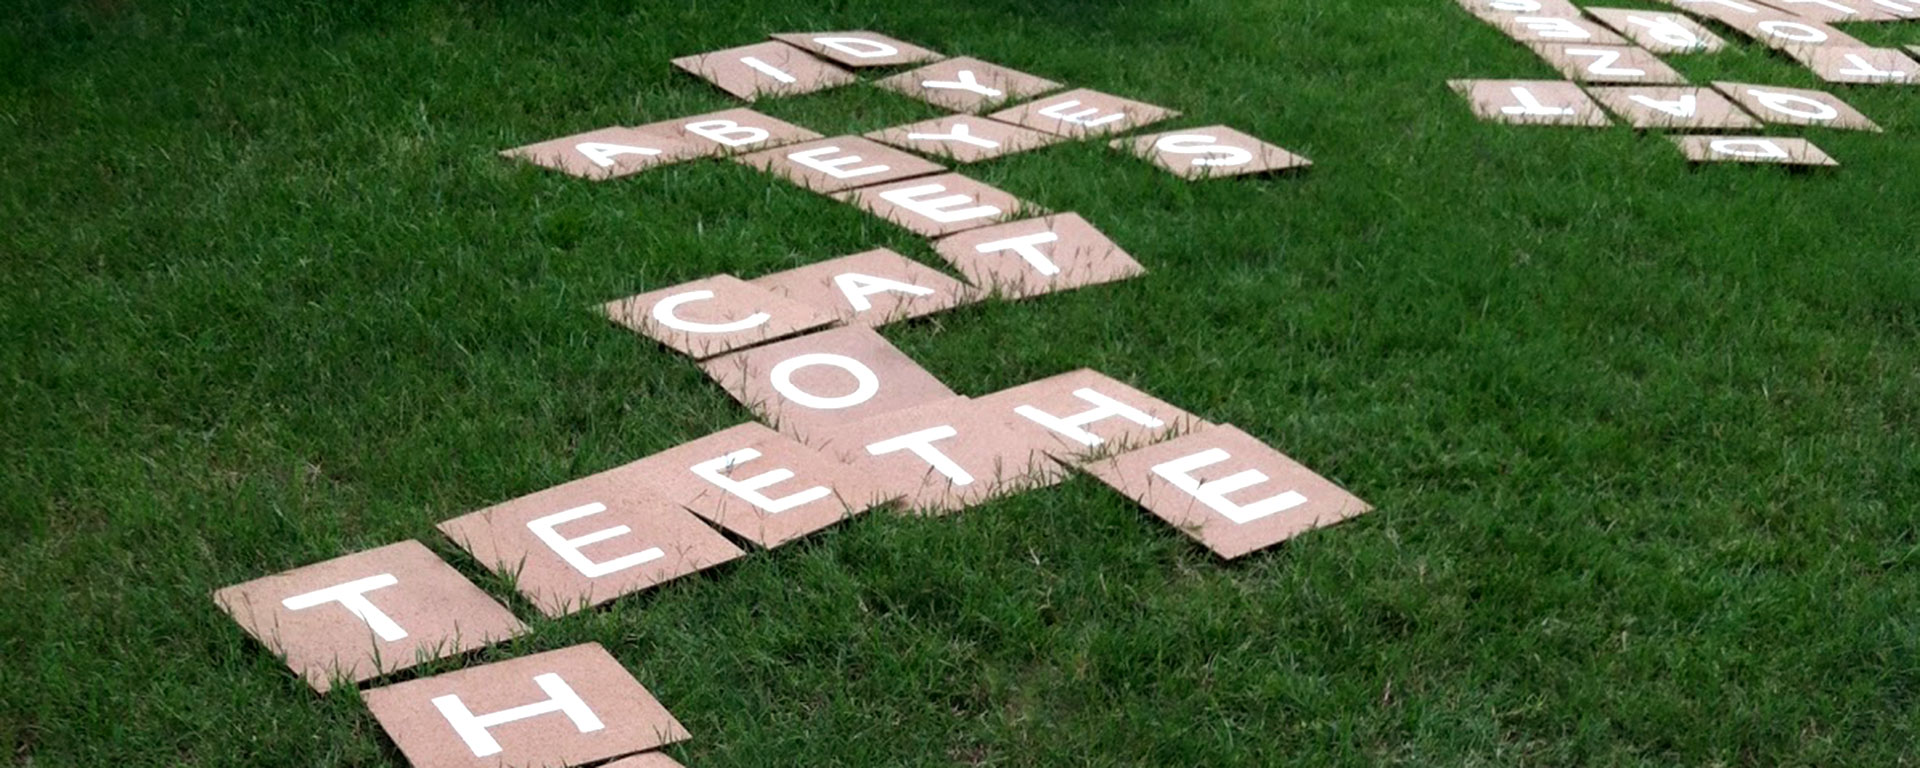 diy outdoor fun u0026 games for the family living outdoors